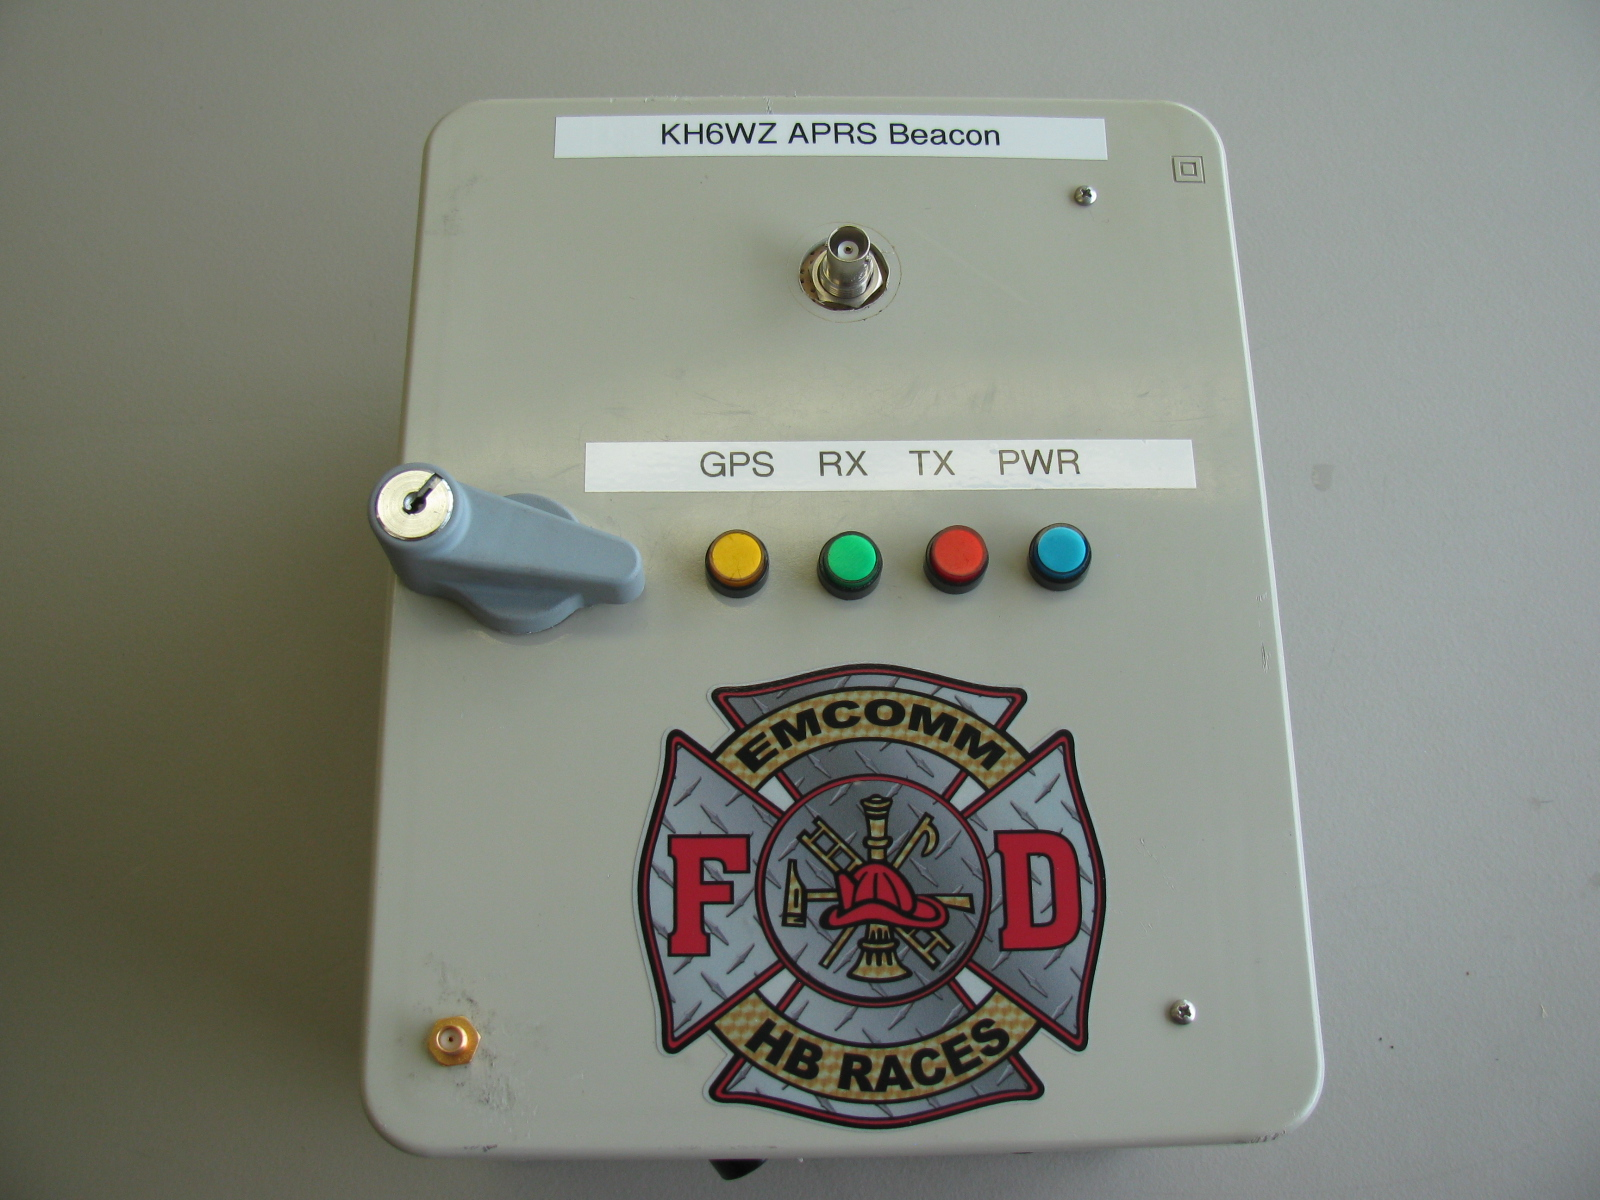 The KH6WZ Automatic Position Reporting System (APRS) Beacons